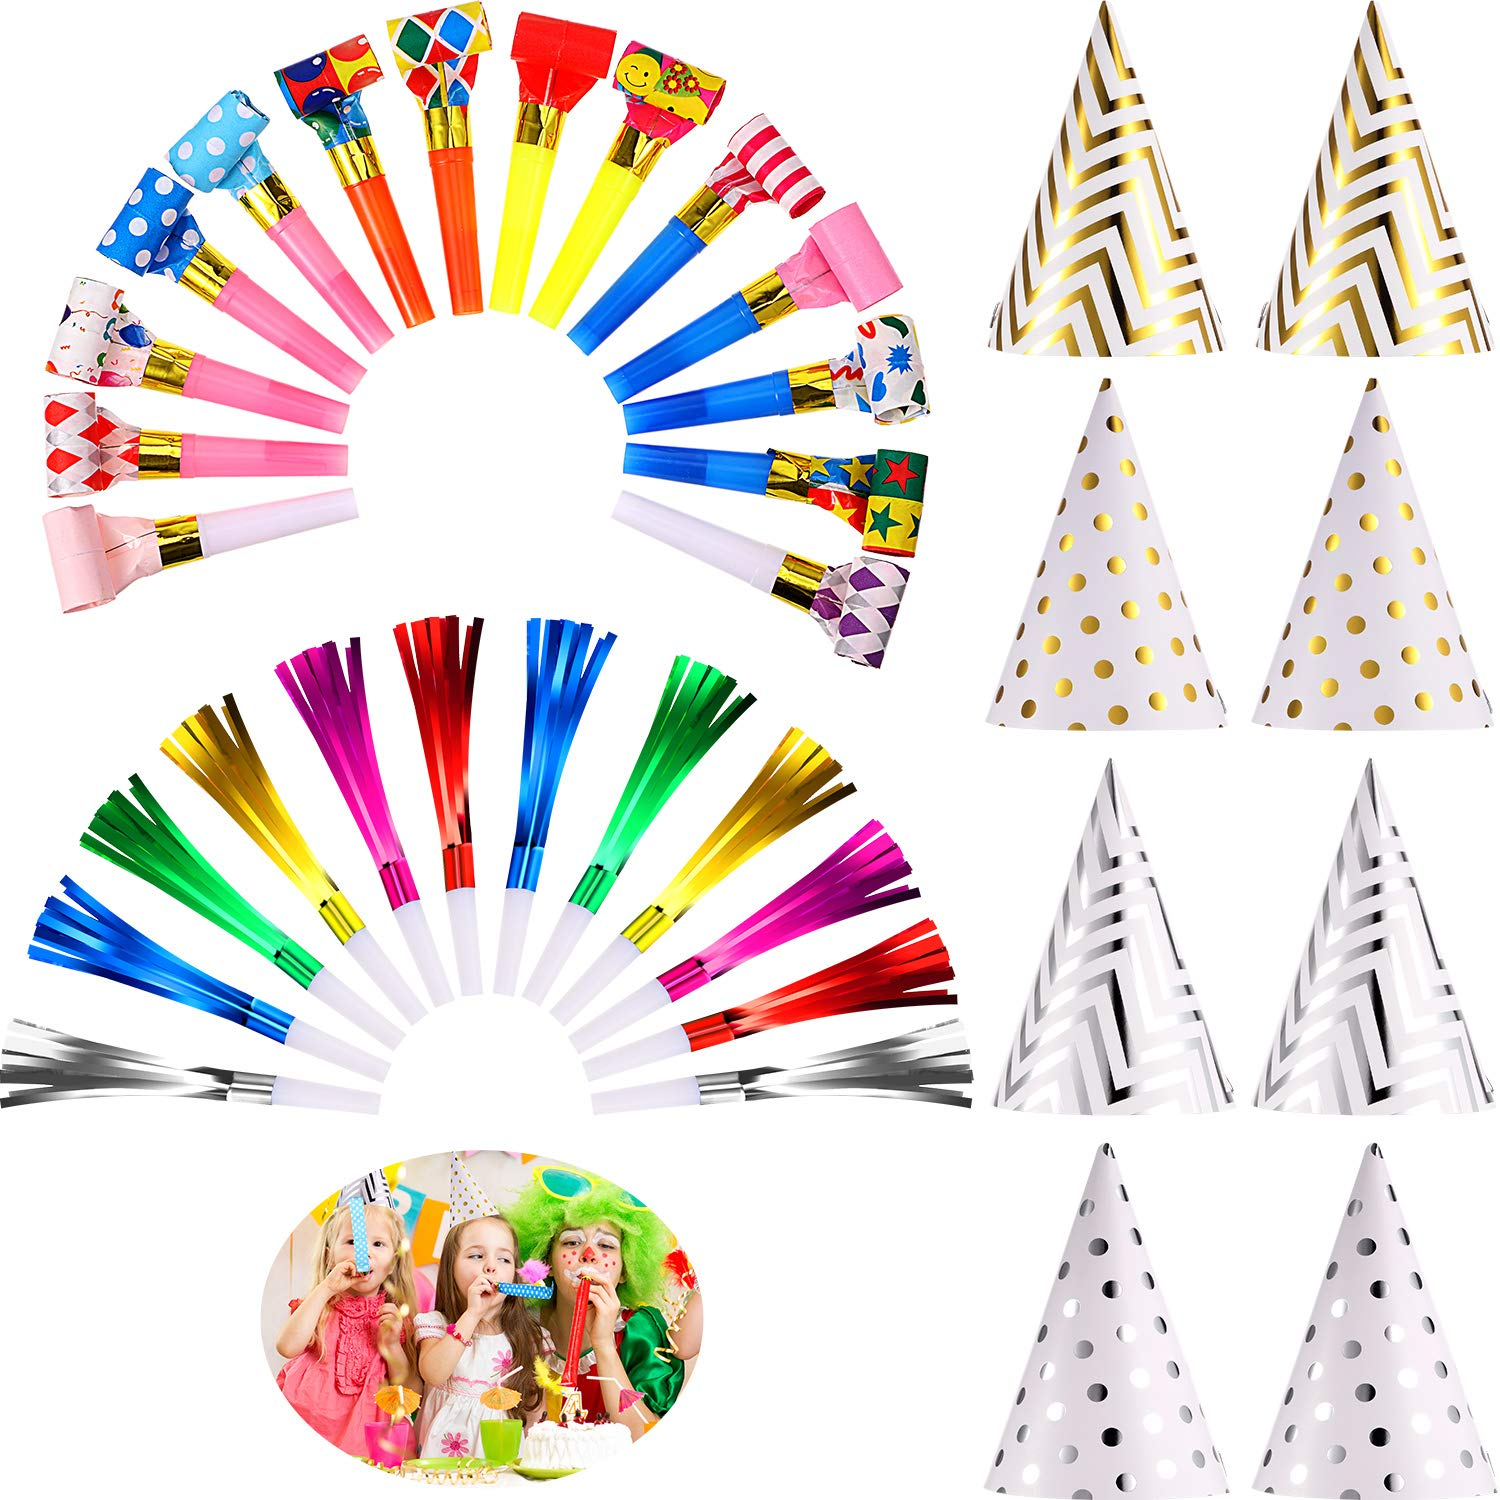 80 Pieces Colorful Party Blower Musical Blowouts Whistles Metallic Noisemaker Blowouts and 8 Pieces Birthday Party Cone Hats Foil Cone Hats for Kids